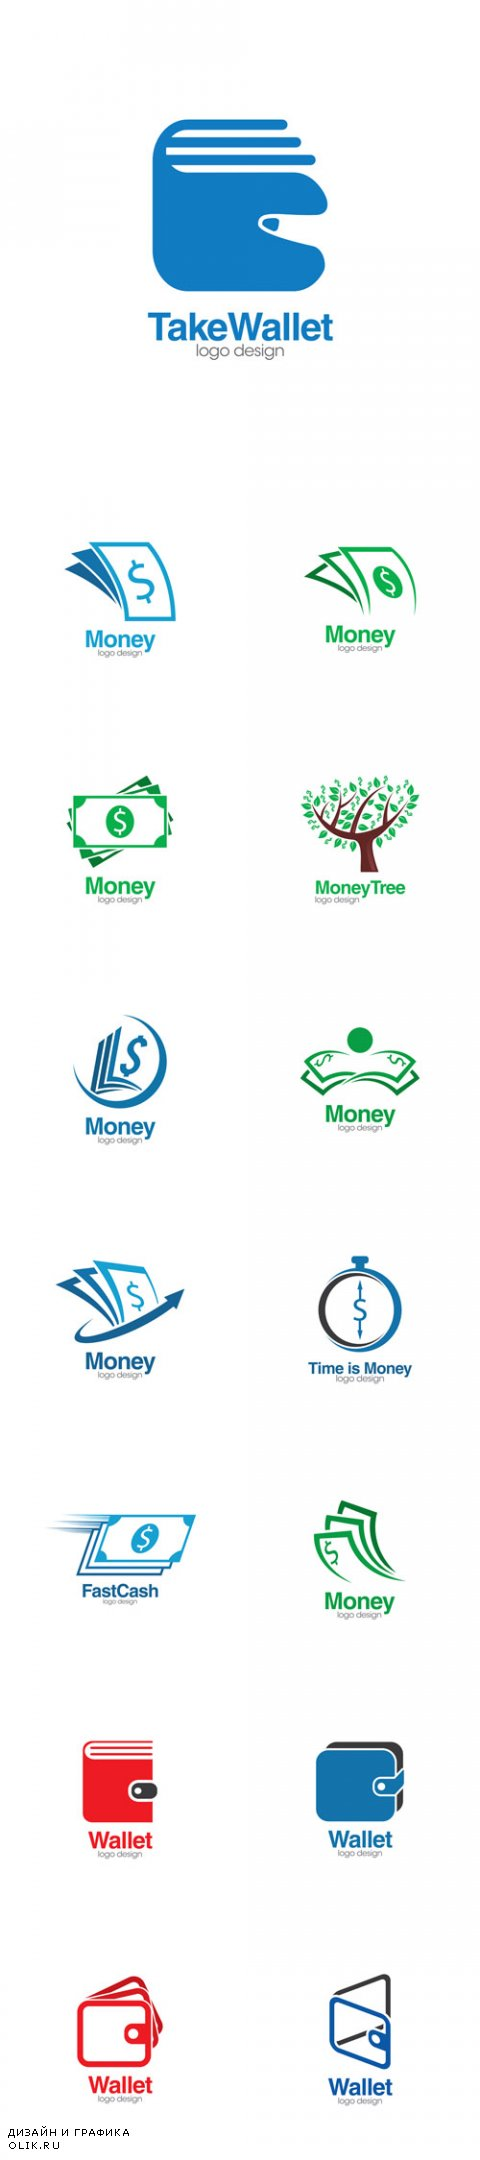 Vector Wallet and Money Creative Concept Logo Design Template